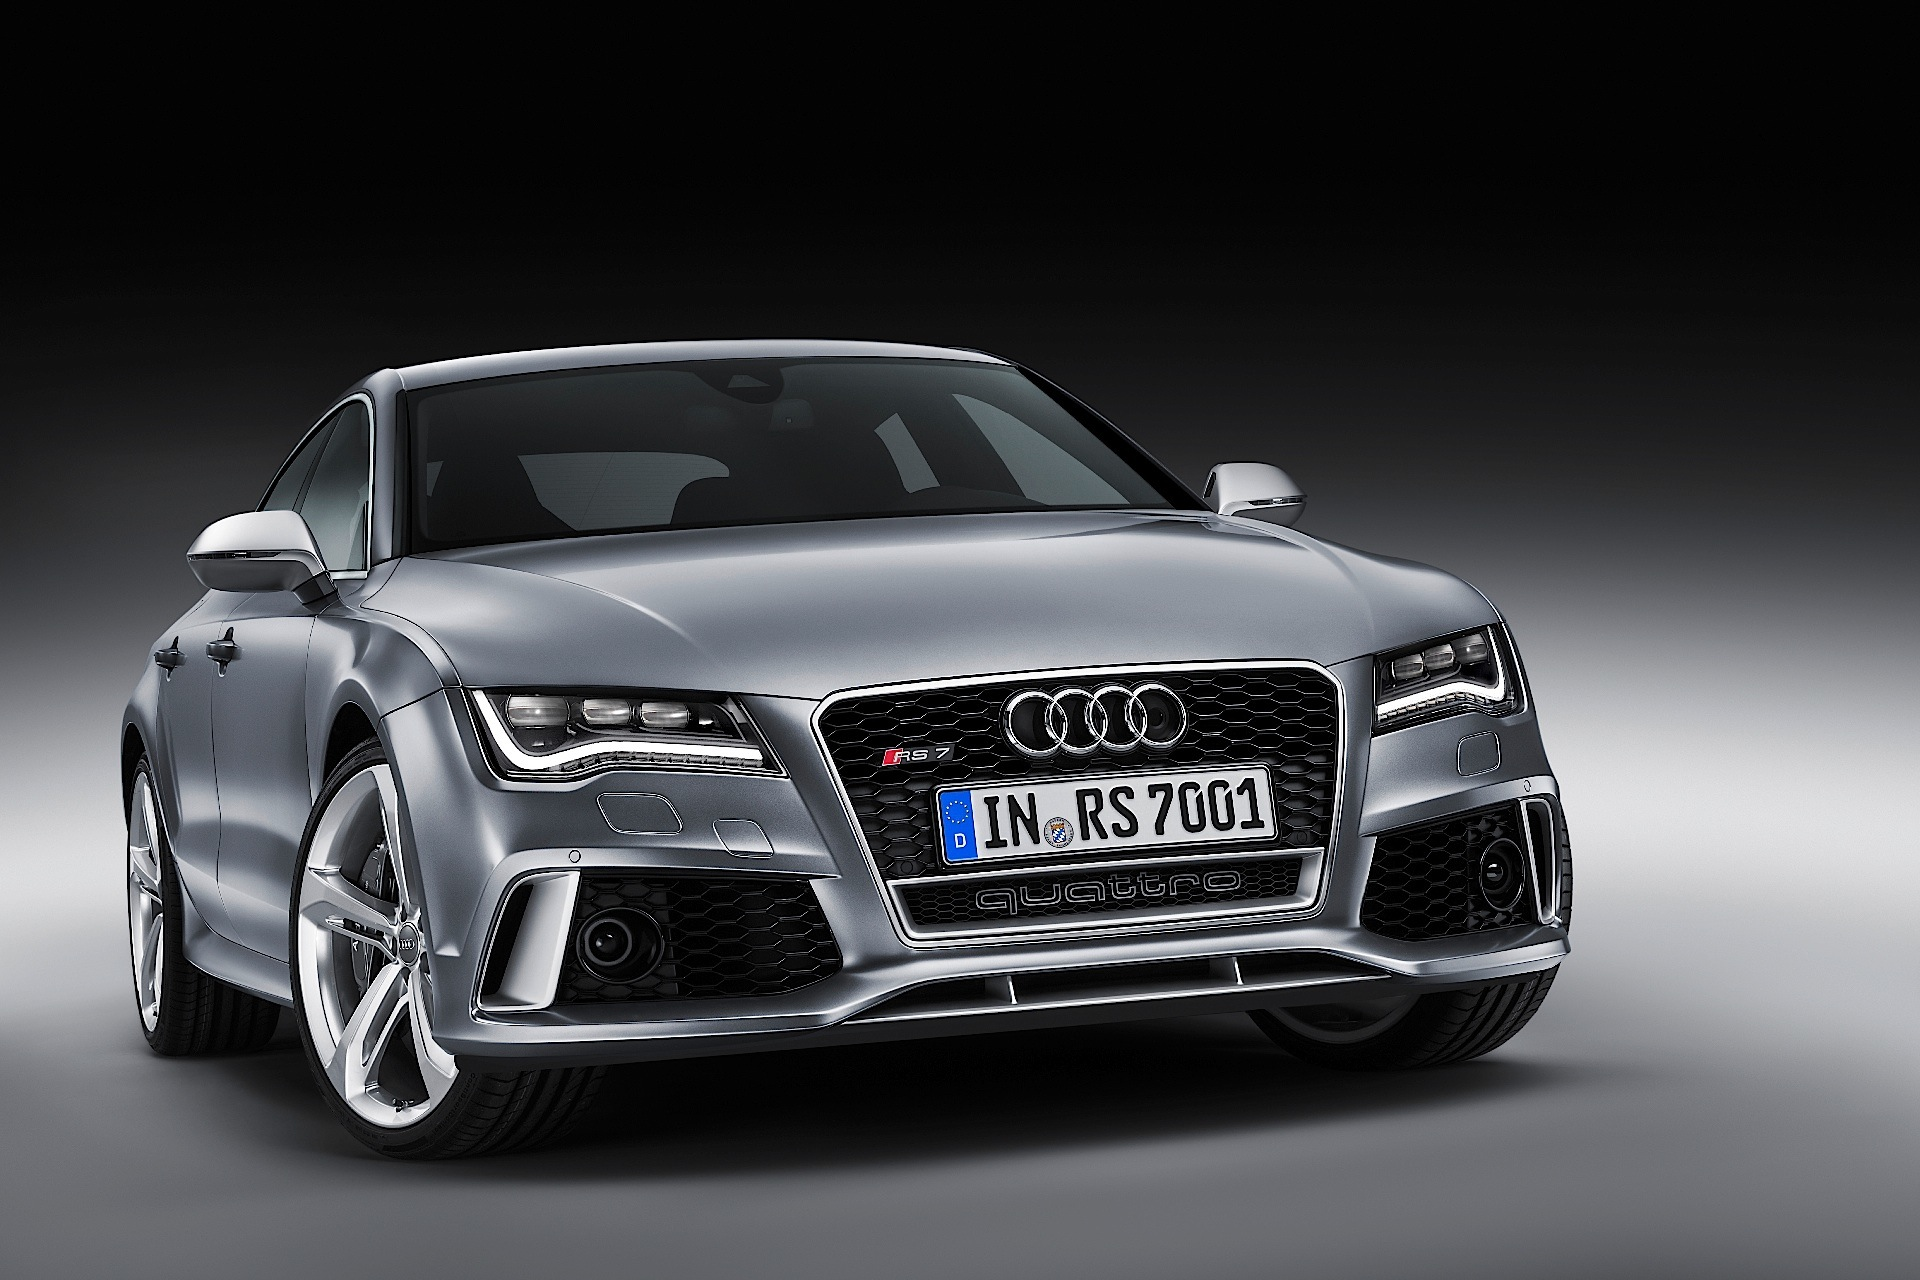 Audi Rs7 Sportback Specs Photos 2013 2014 2015 2016 2017